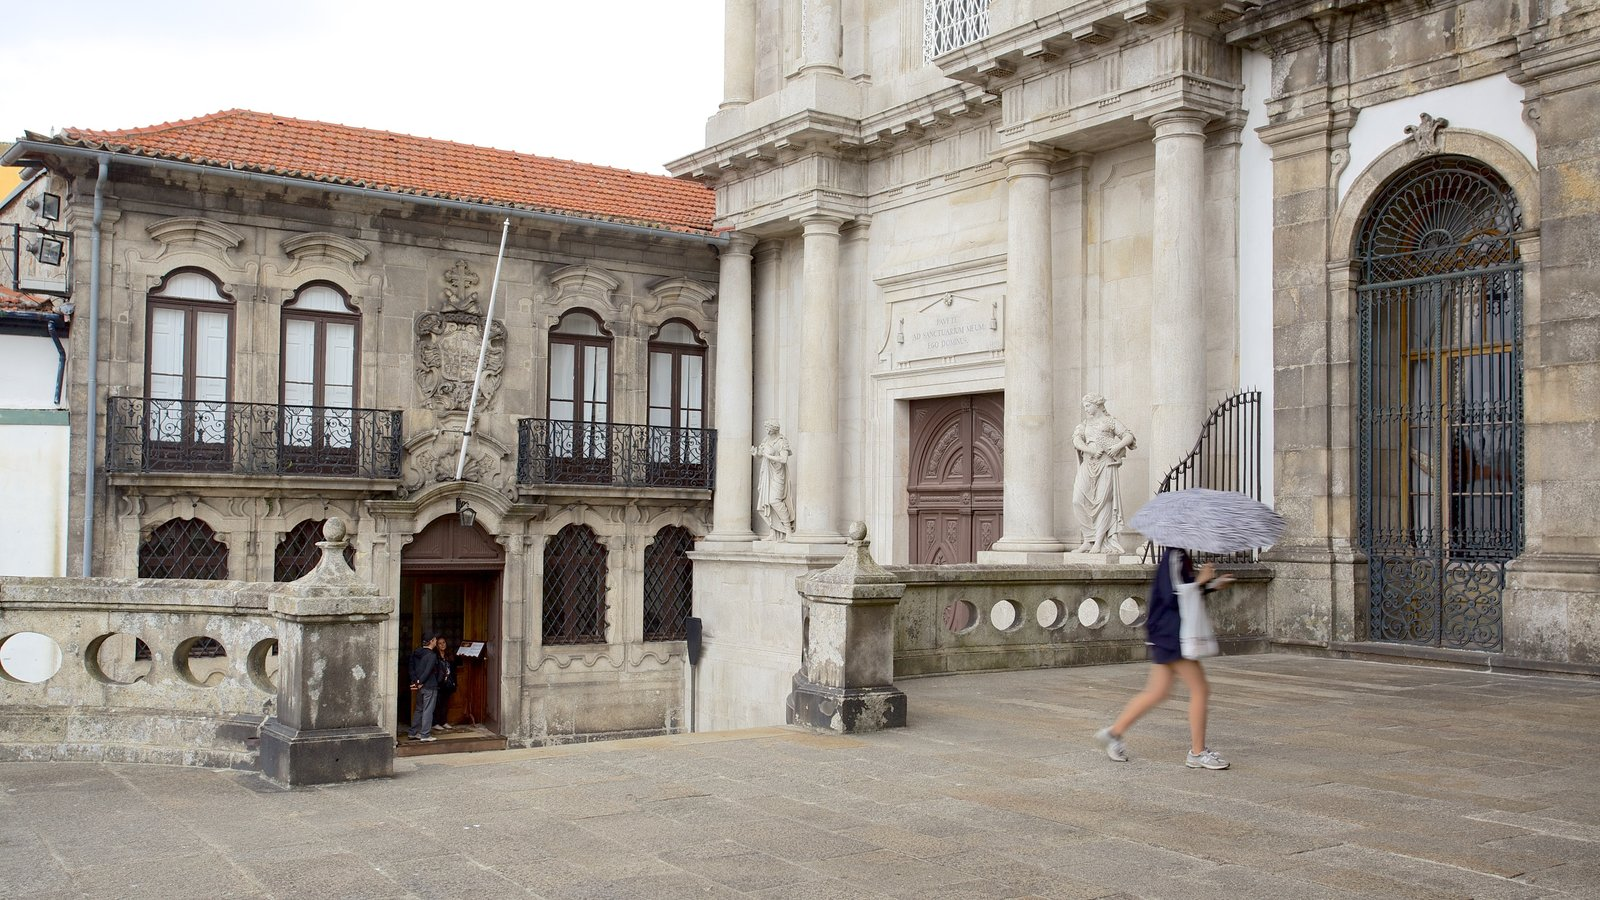 Church of Sao Francisco which includes heritage architecture, a church or cathedral and street scenes